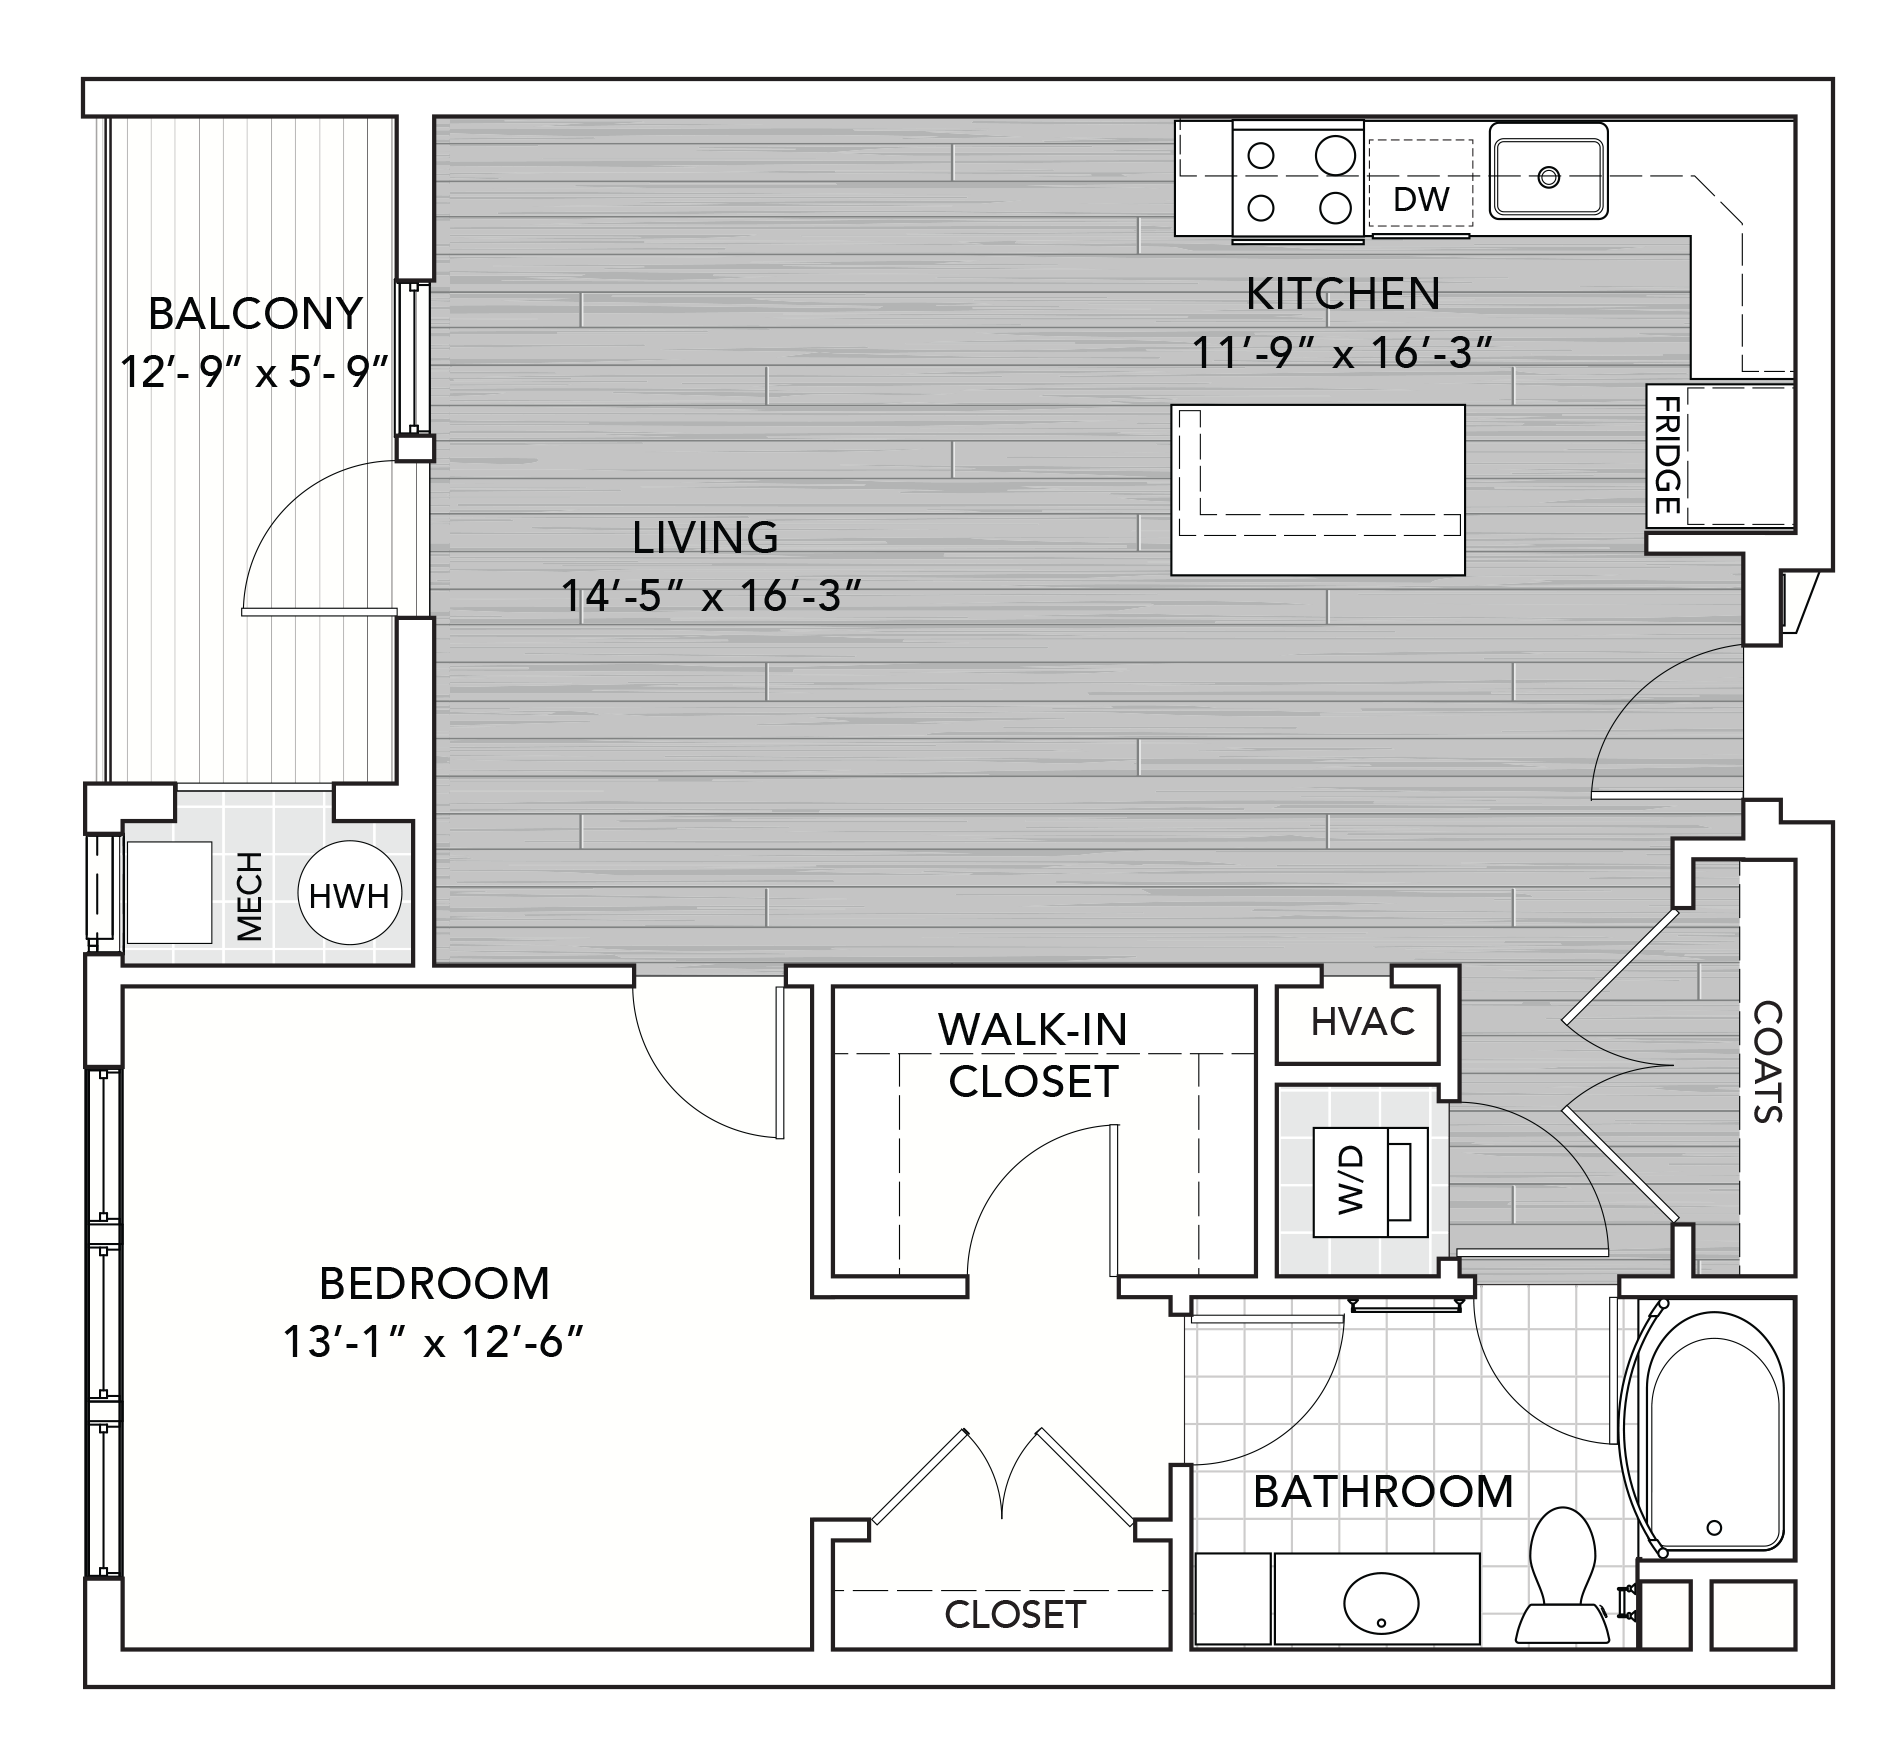 P0655013 parksquare a9 933 2 floorplan